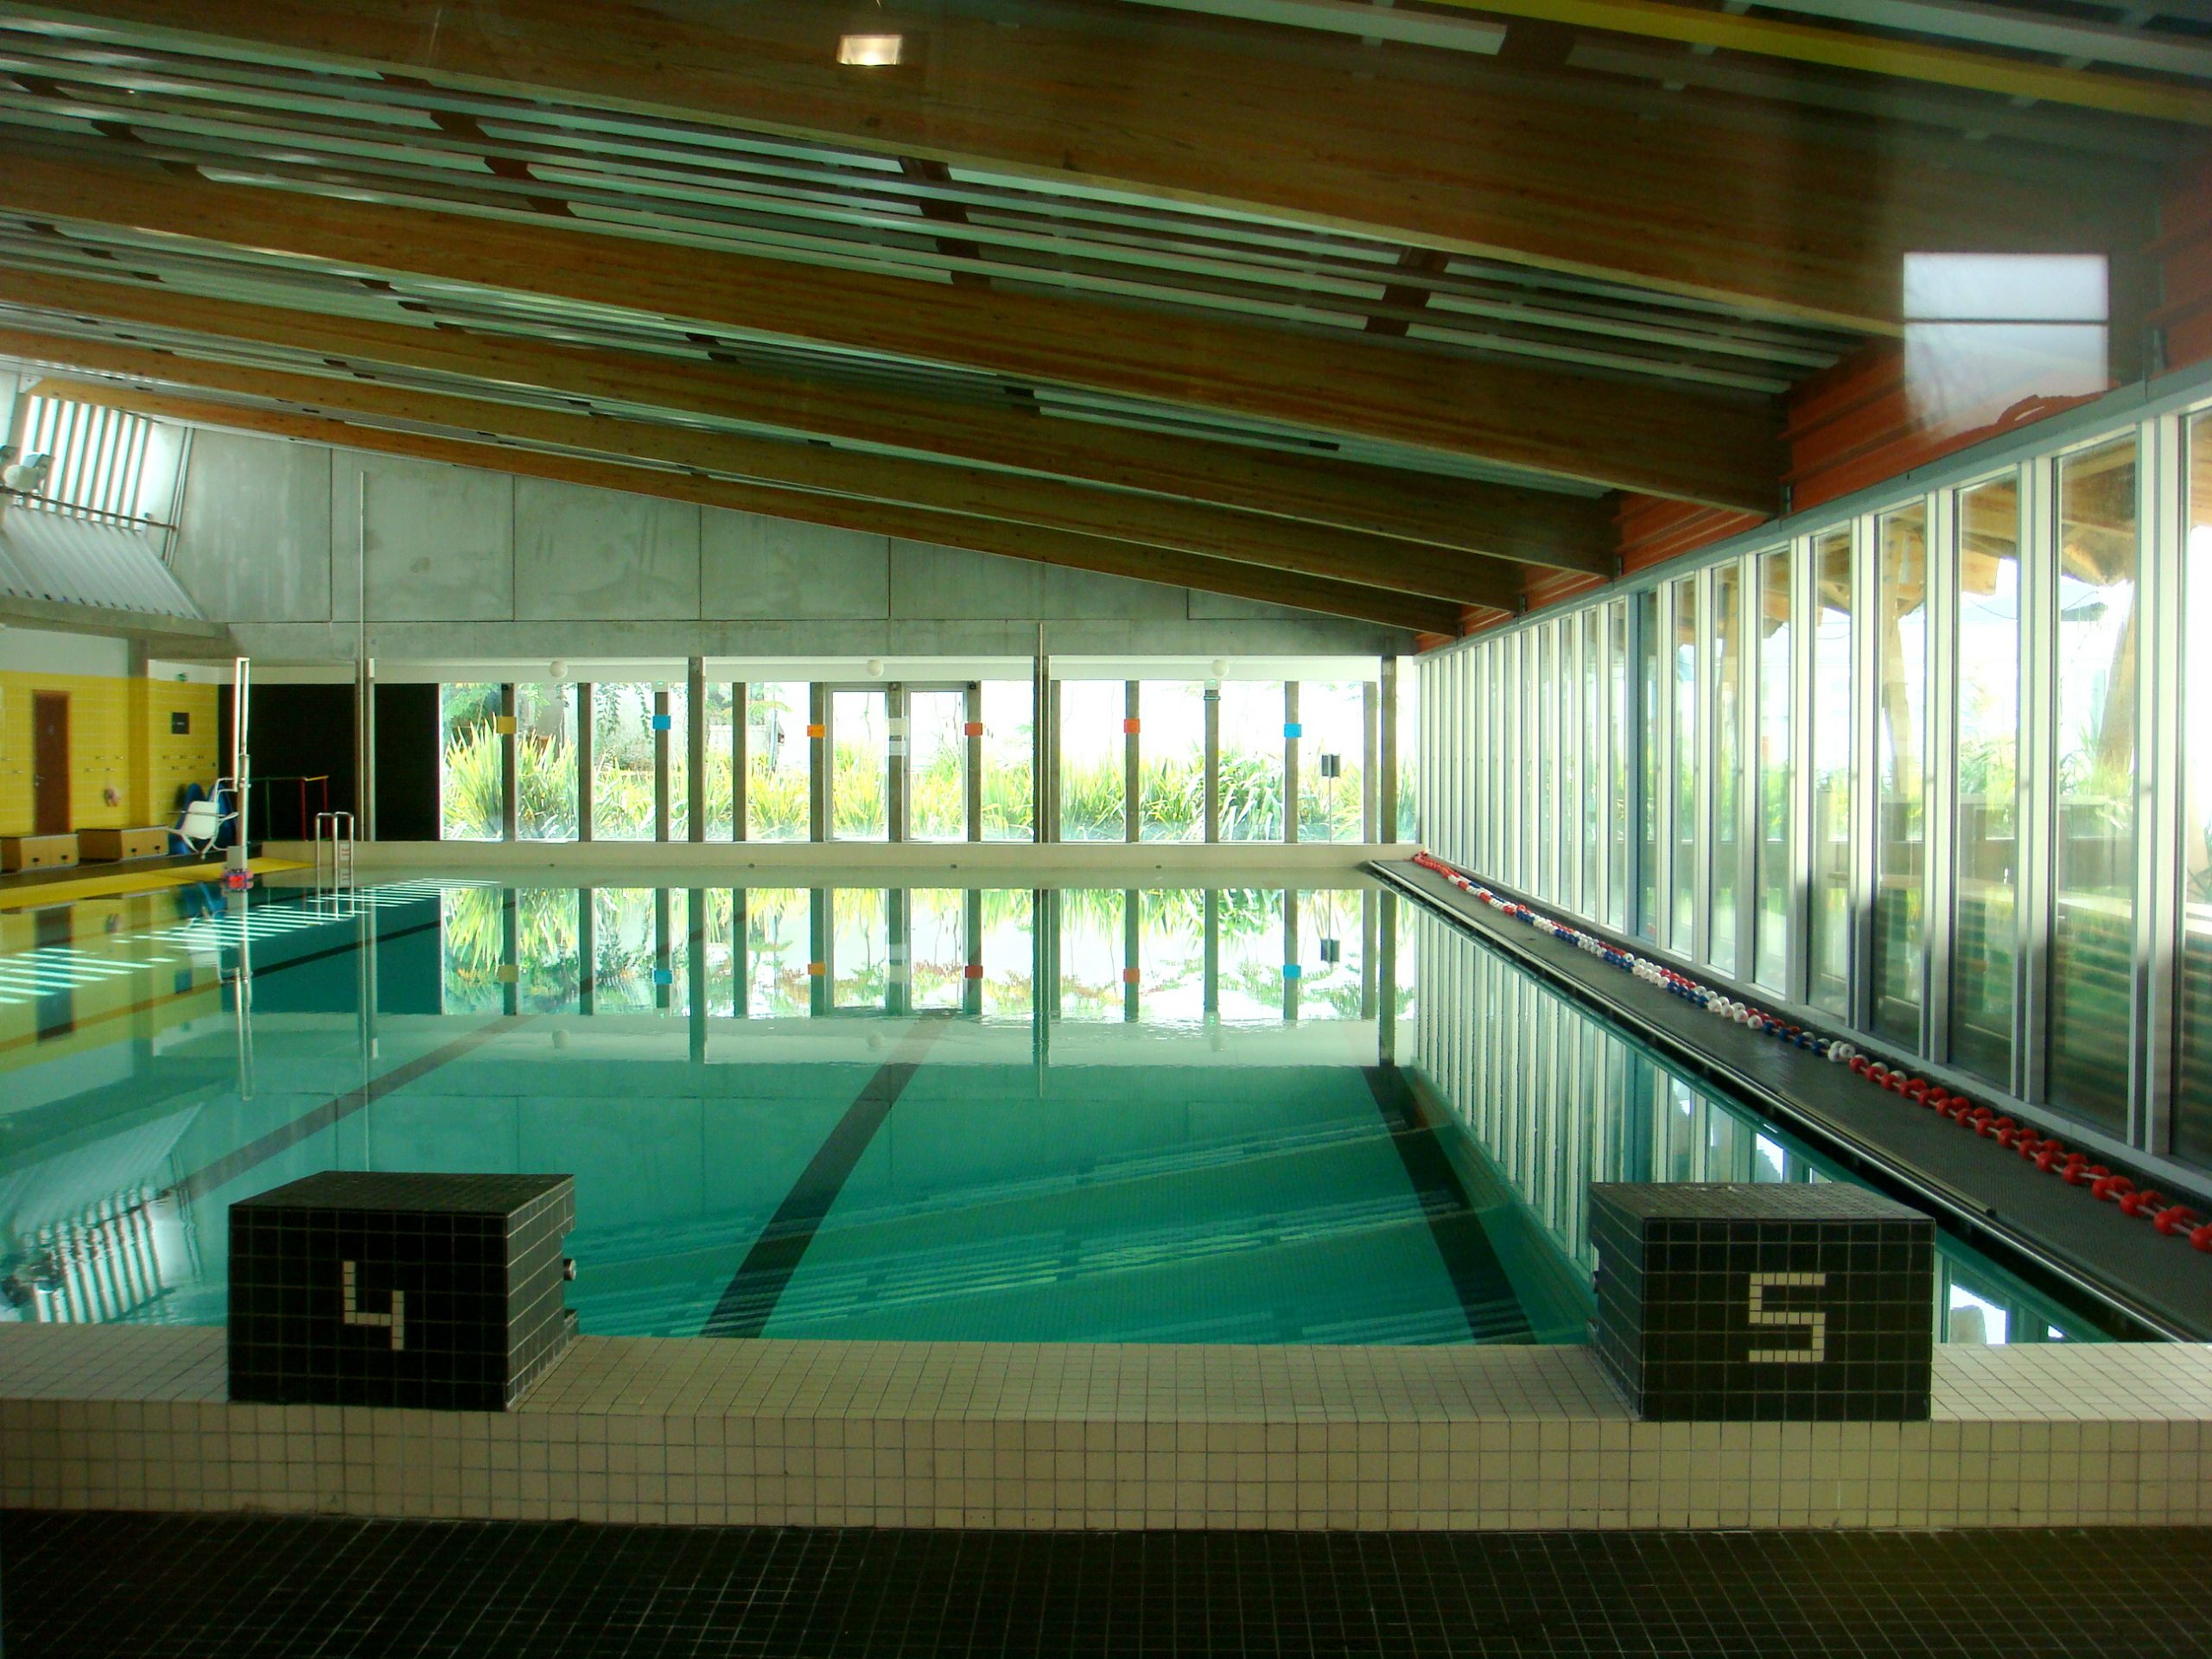 File:piscine Bègles Intérieur.jpg - Wikimedia Commons serapportantà Piscine De Begles